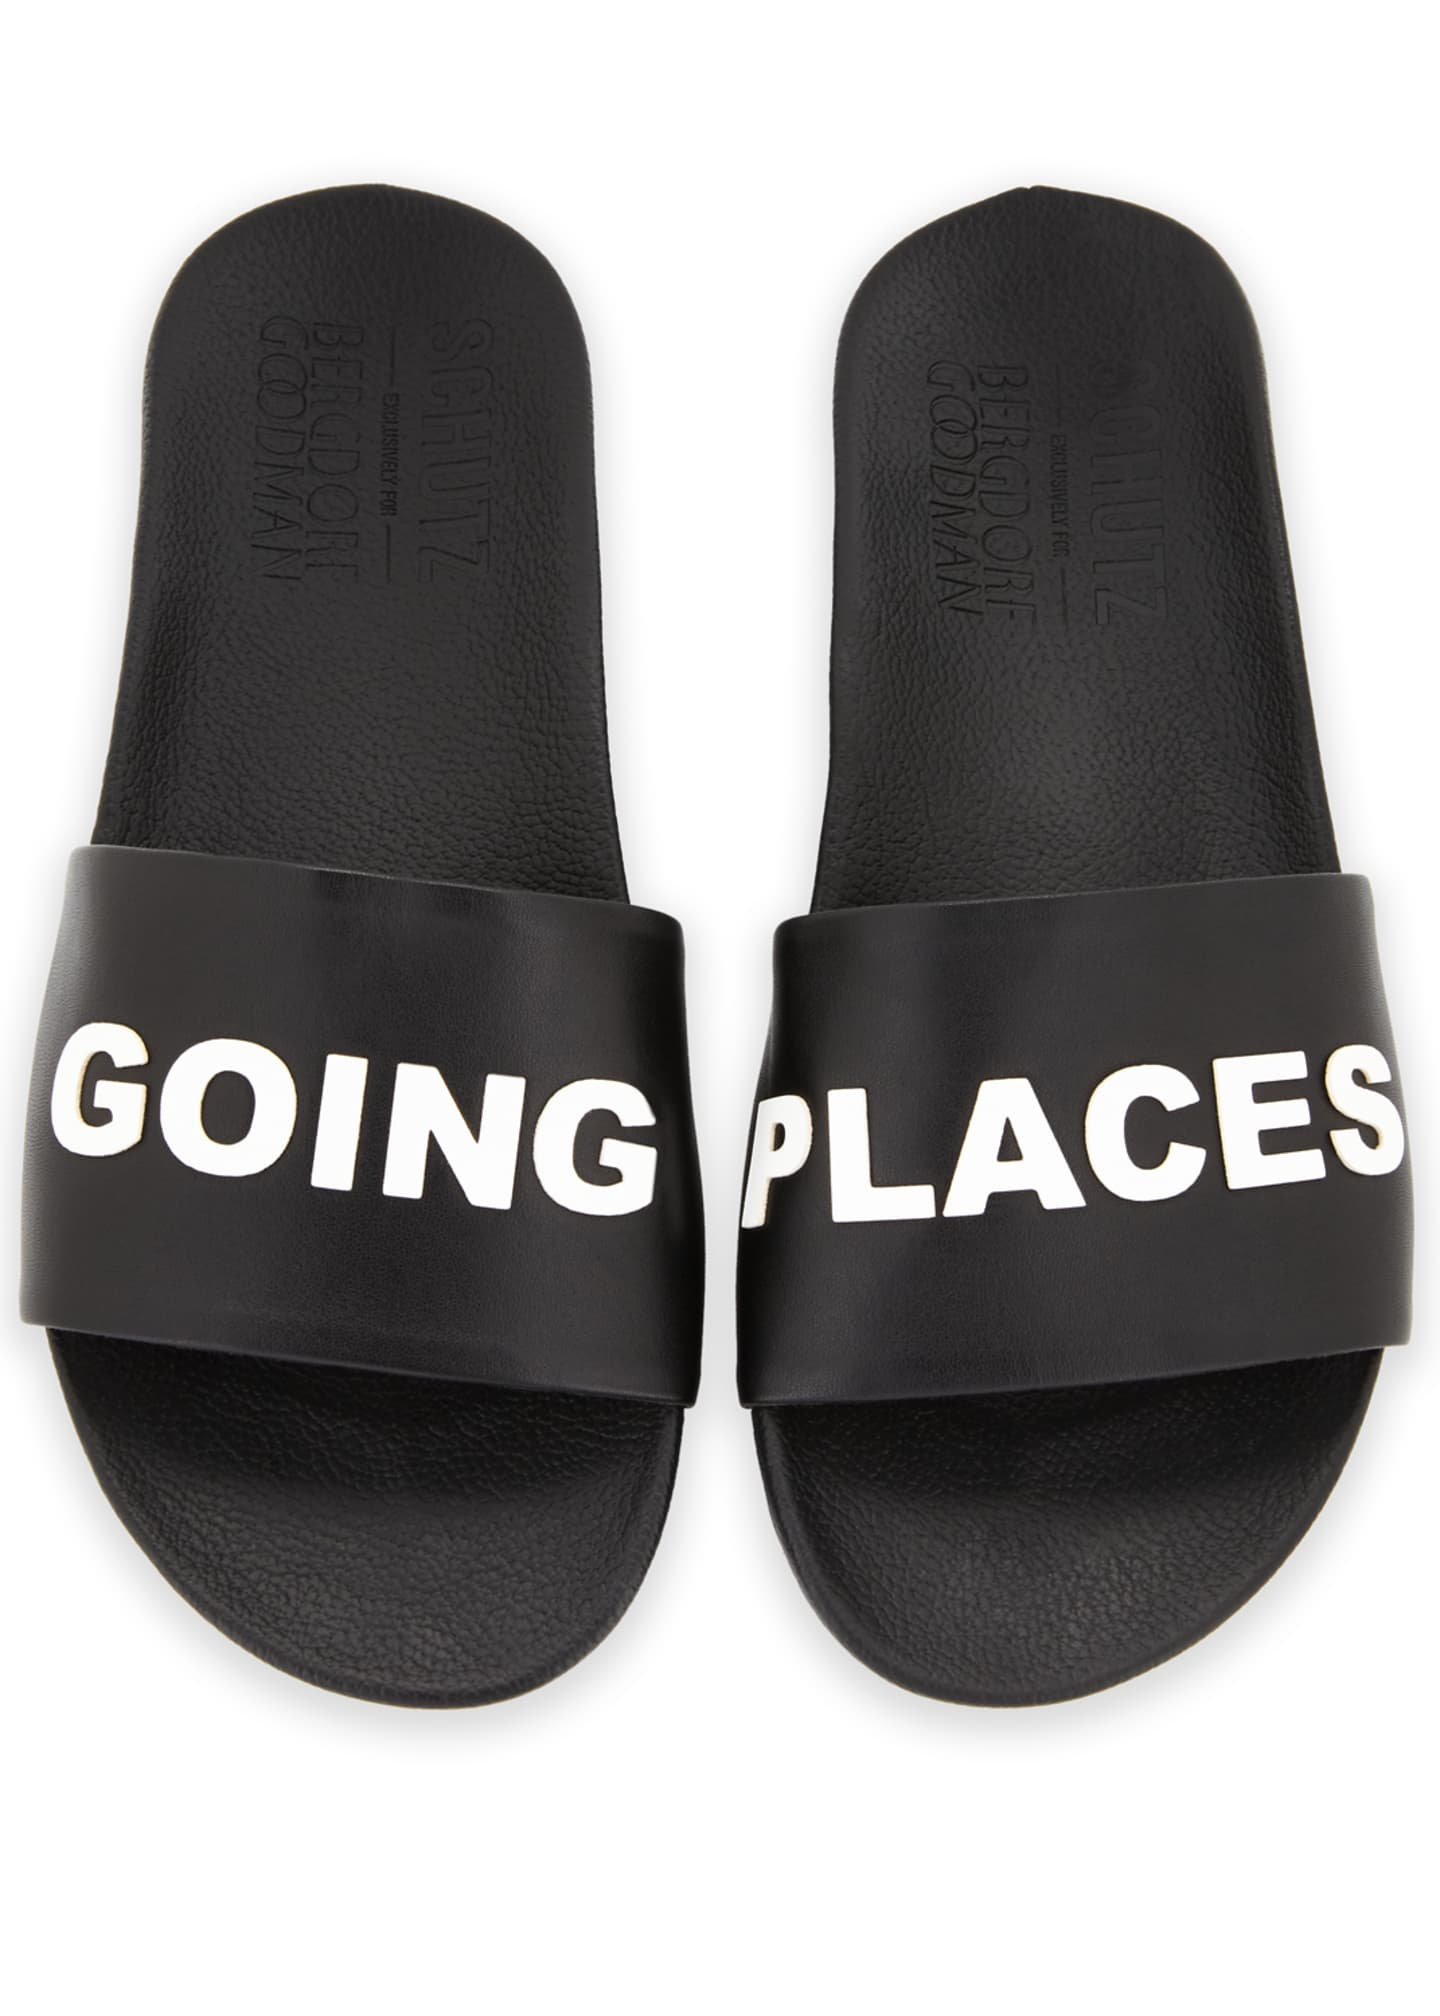 Schutz Going Places Slide Sandal